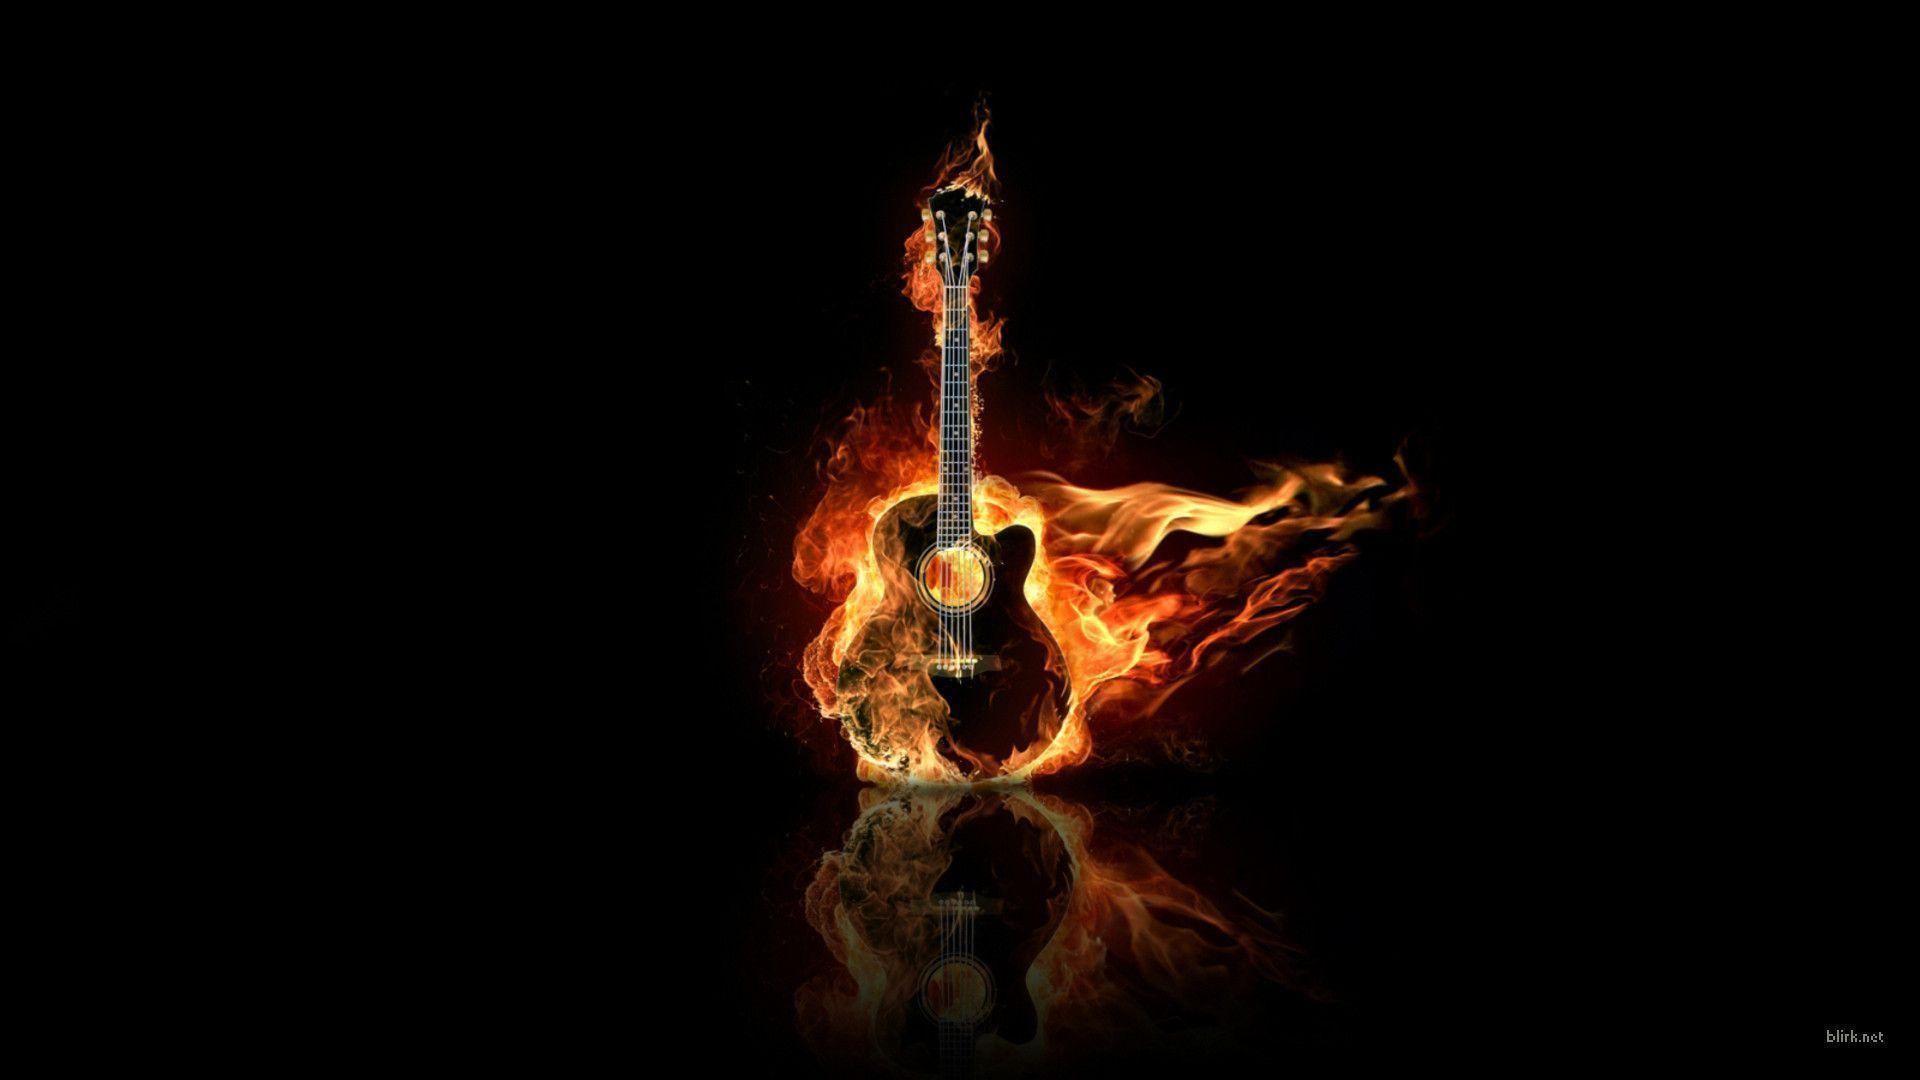 Guitar Image Hd Hd Background Wallpaper 16 HD Wallpapers | www ...